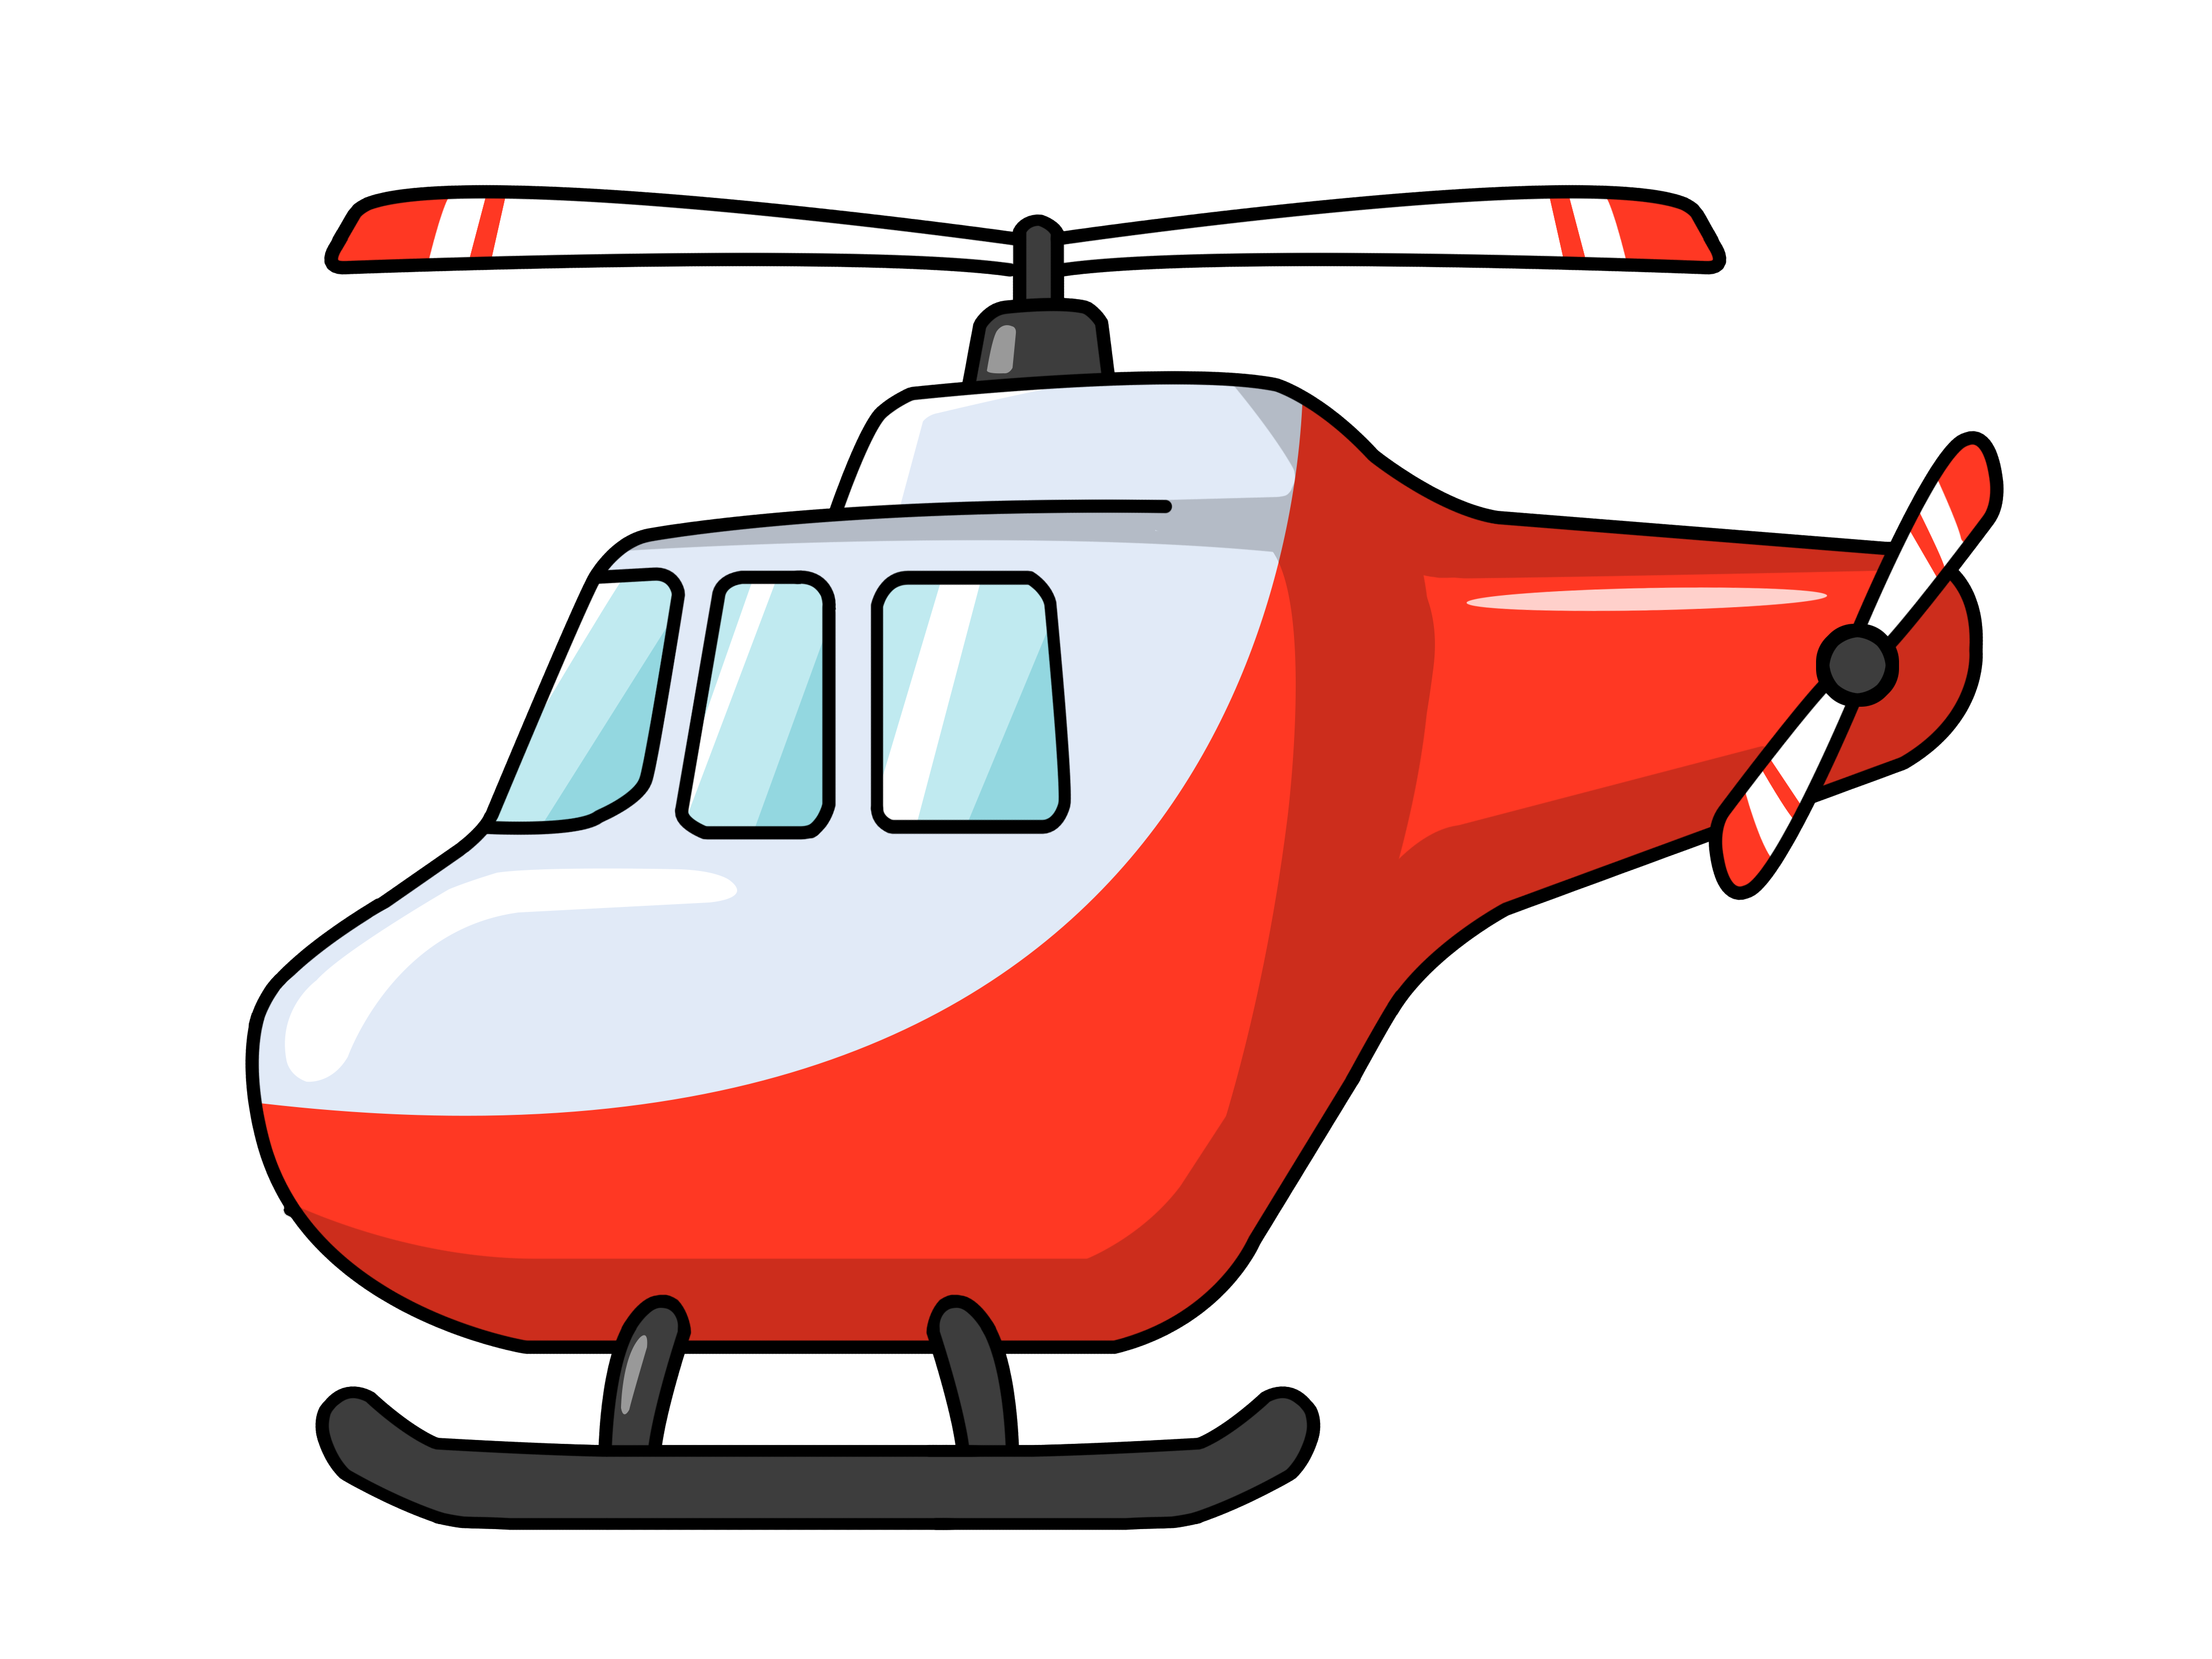 Helicopter clipart Clipart Clipart clipart Helicopter helicopter